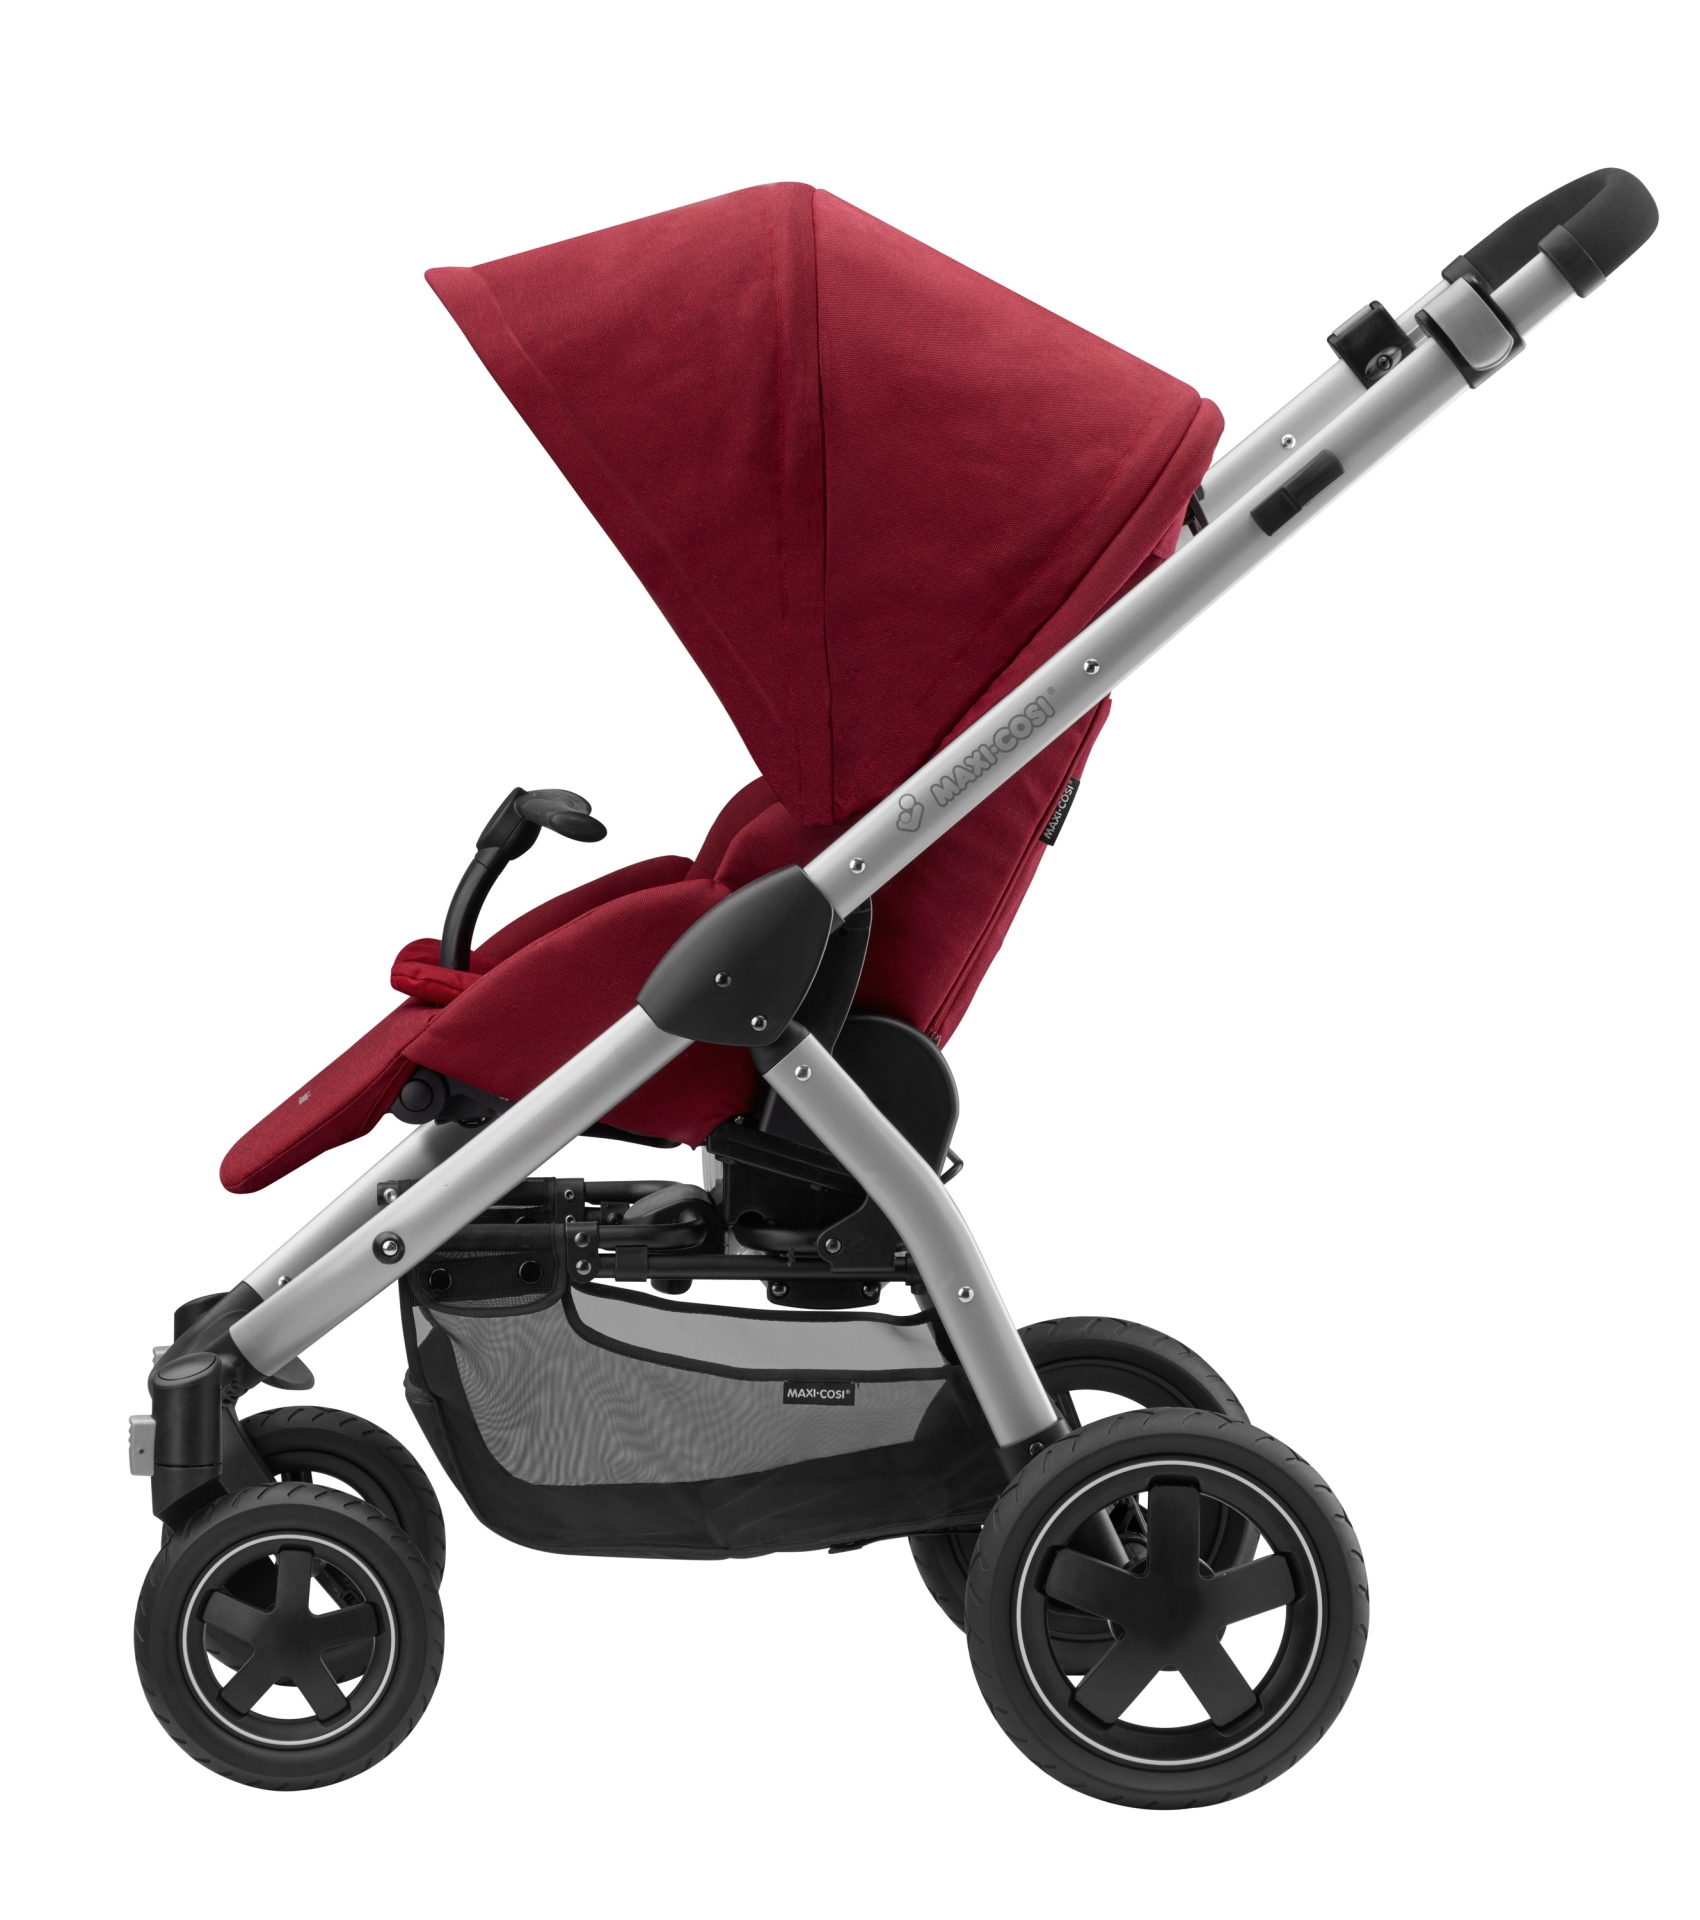 maxi cosi stroller stella 2017 black raven buy at kidsroom strollers. Black Bedroom Furniture Sets. Home Design Ideas